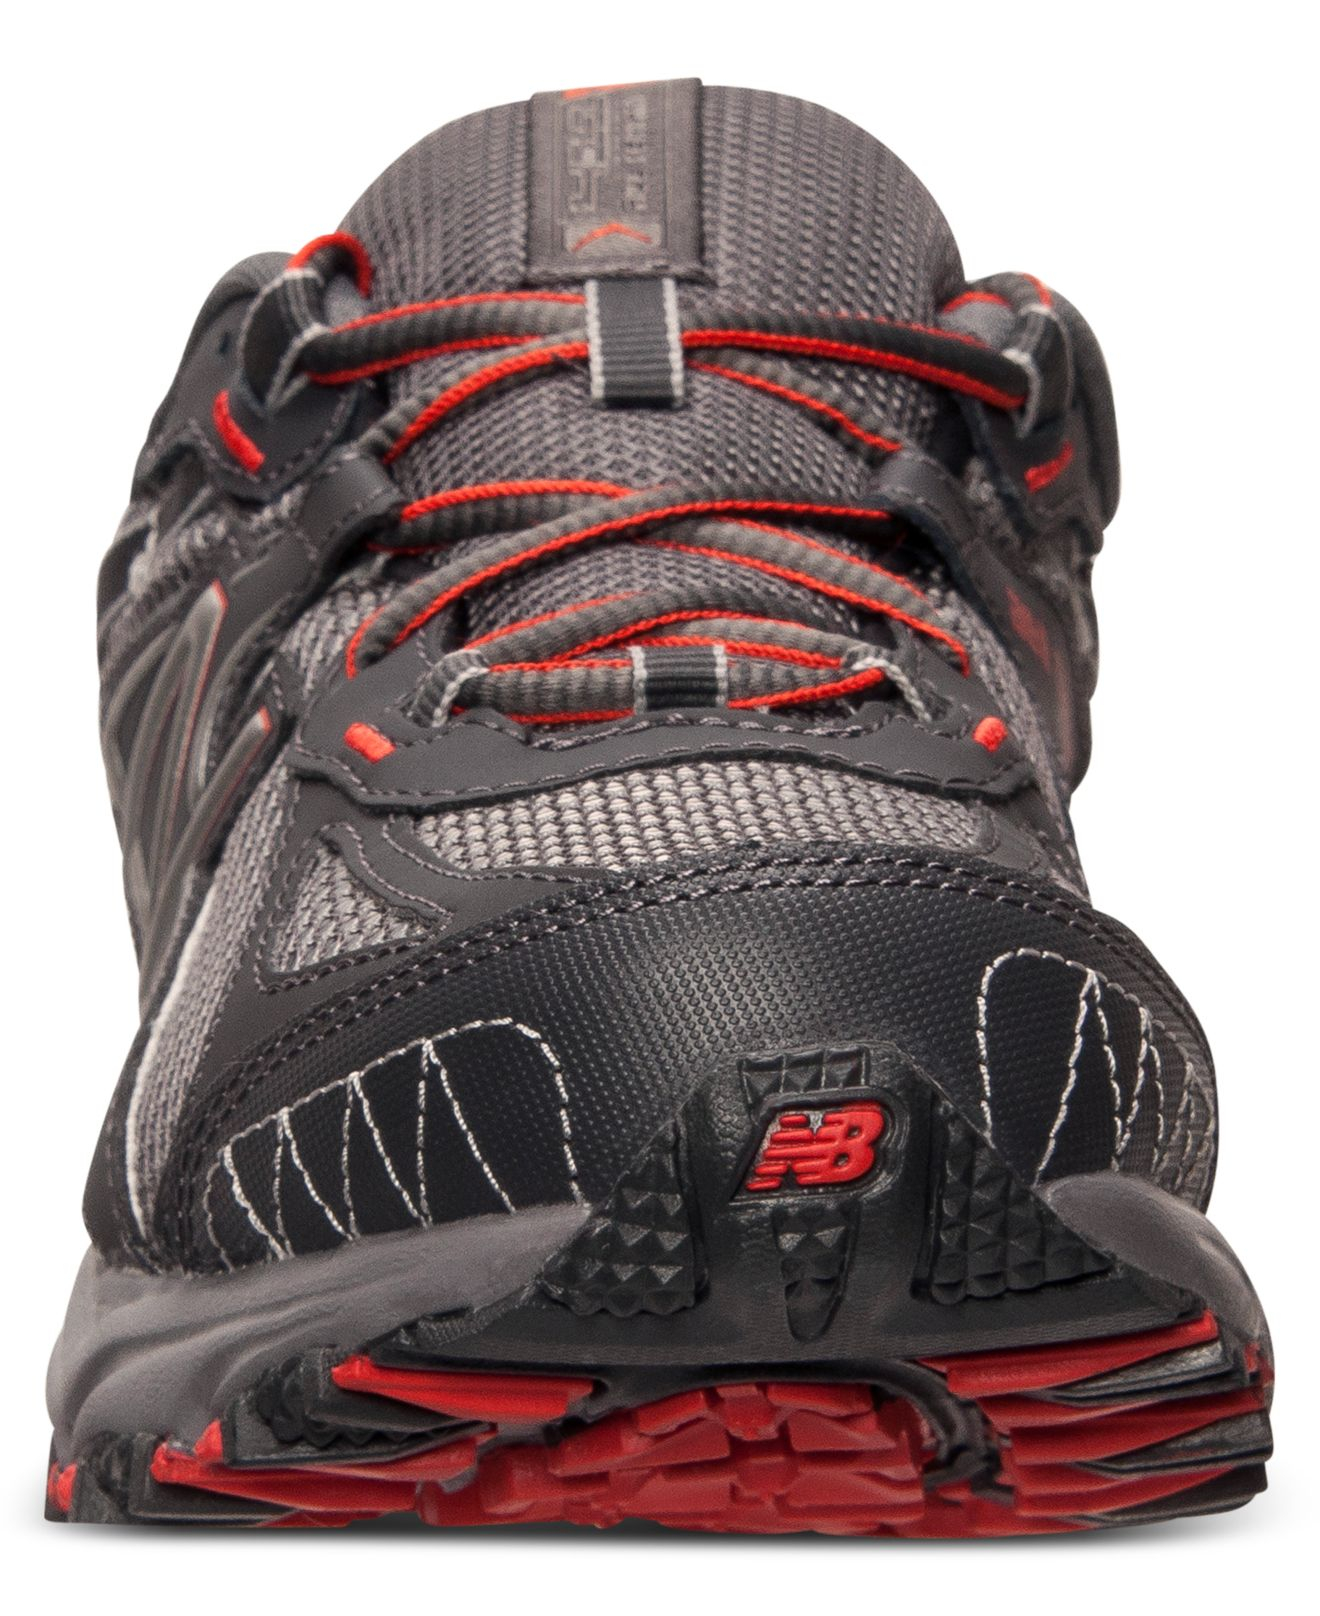 d732ece3c4b1 ... closeout lyst new balance mens 411 v2 wide running sneakers from finish  7732b 983a0 sale new balance mens mt571 outdoor all terrain ...